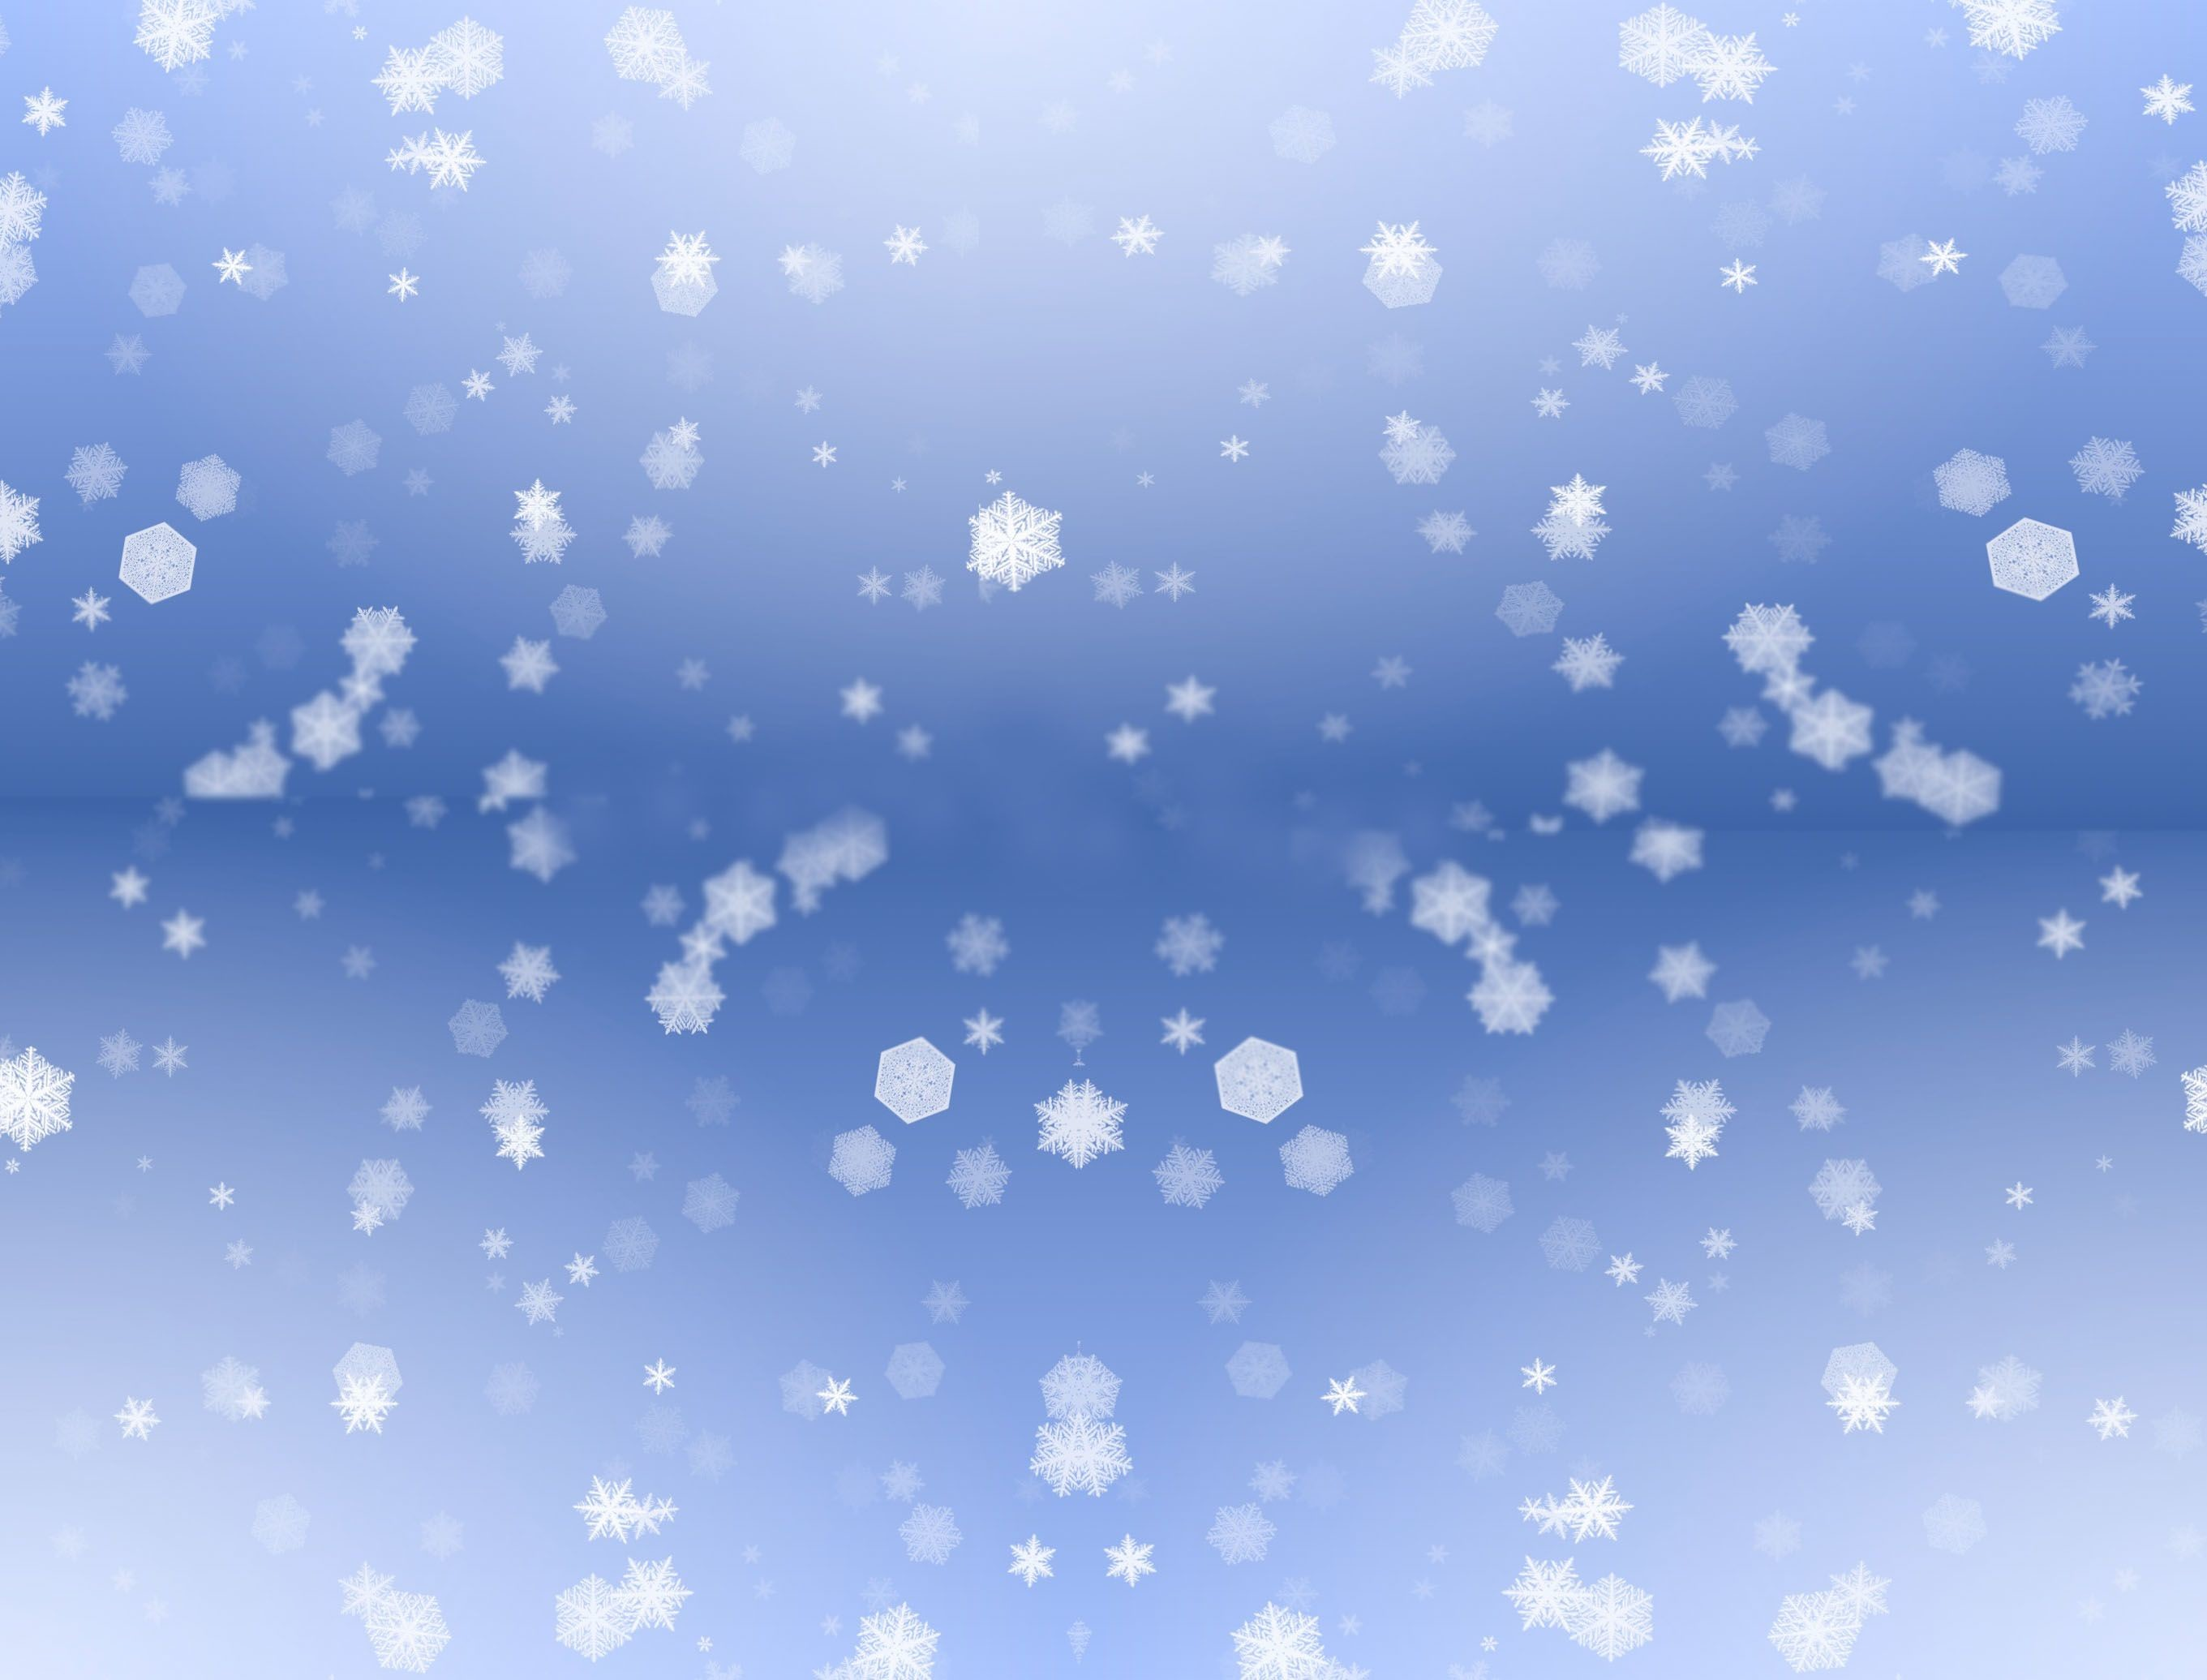 Snow Background Jpg Manchester Creative And Media Academy #3940